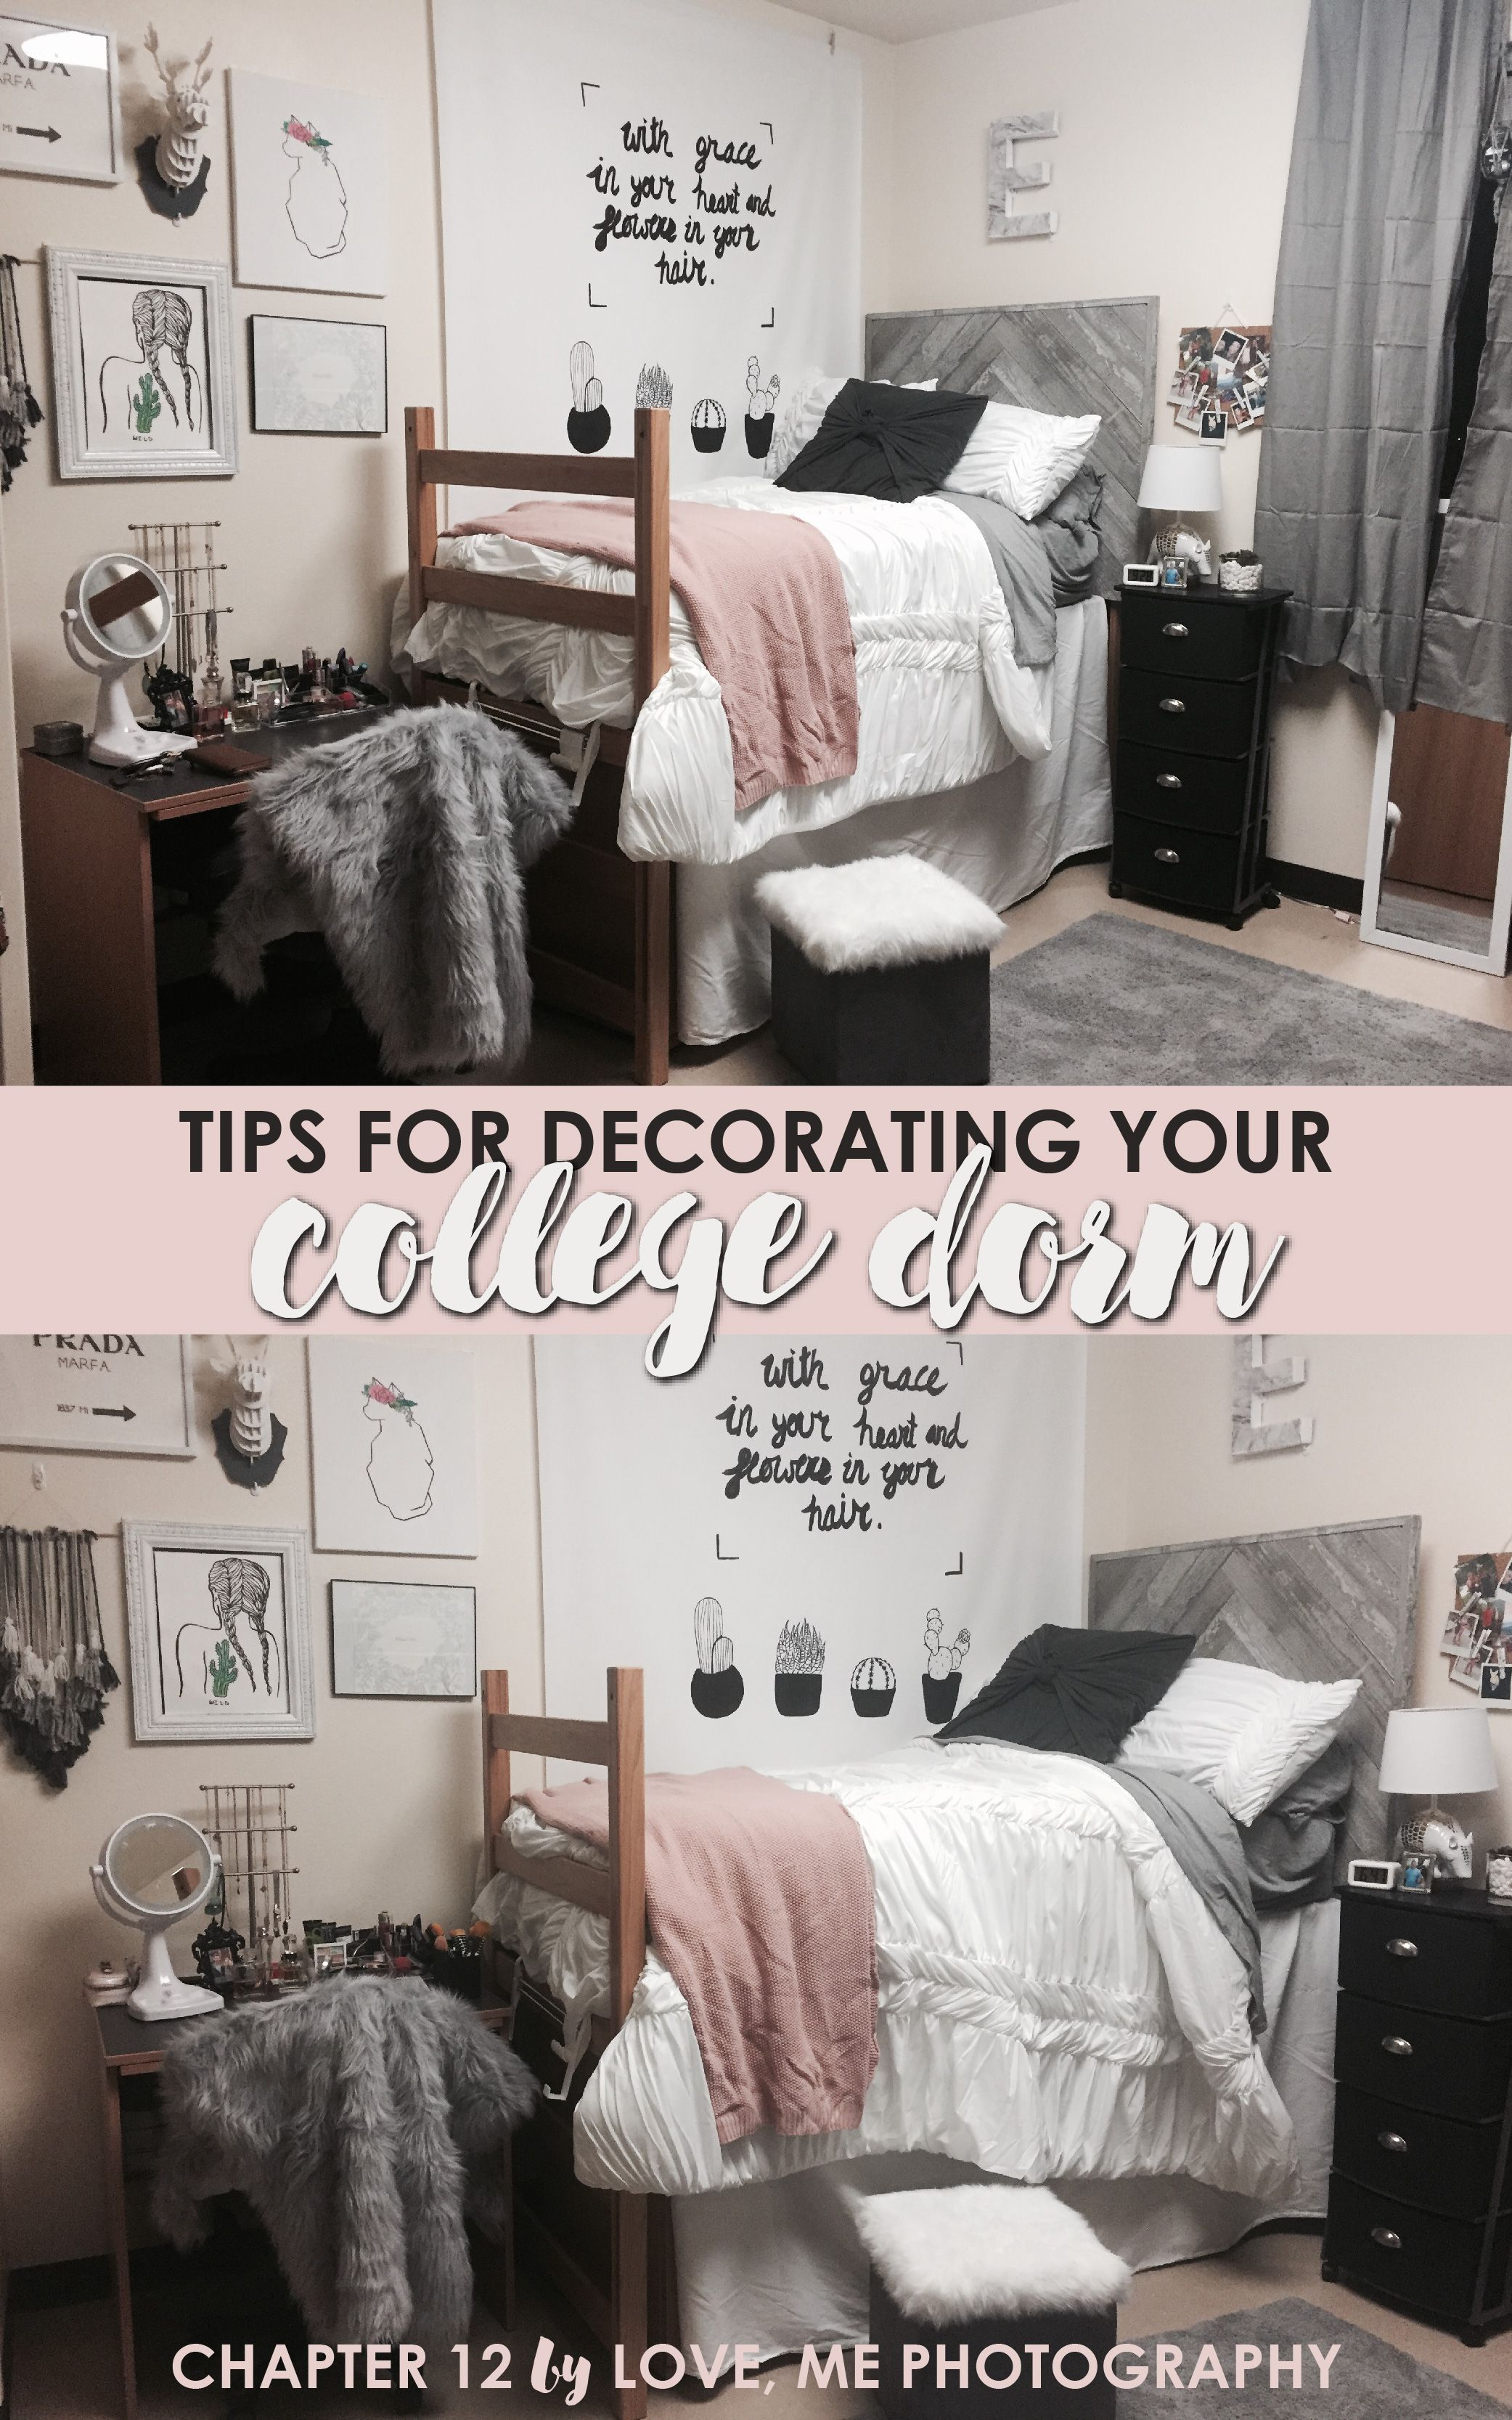 Design Dorm Room Ideas creative dorm room ideas to make your space feel more cozy www lovemephotography